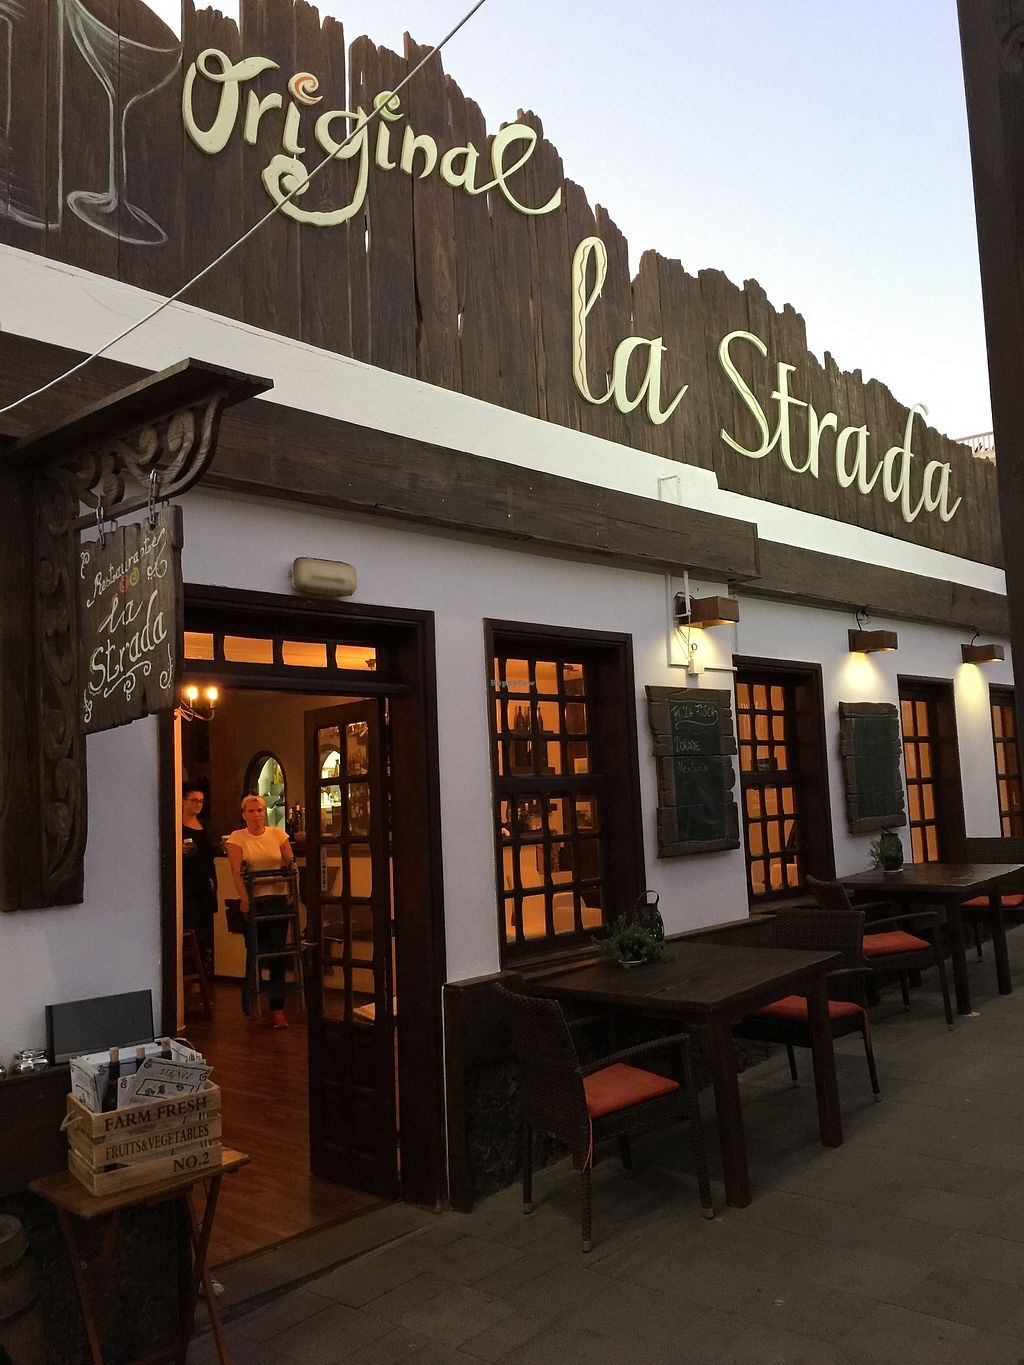 "Photo of La Strada  by <a href=""/members/profile/Anne%20VDH"">Anne VDH</a> <br/>Restaurant La Strada on the harbor of Morro Del Jable <br/> December 24, 2017  - <a href='/contact/abuse/image/107521/338663'>Report</a>"